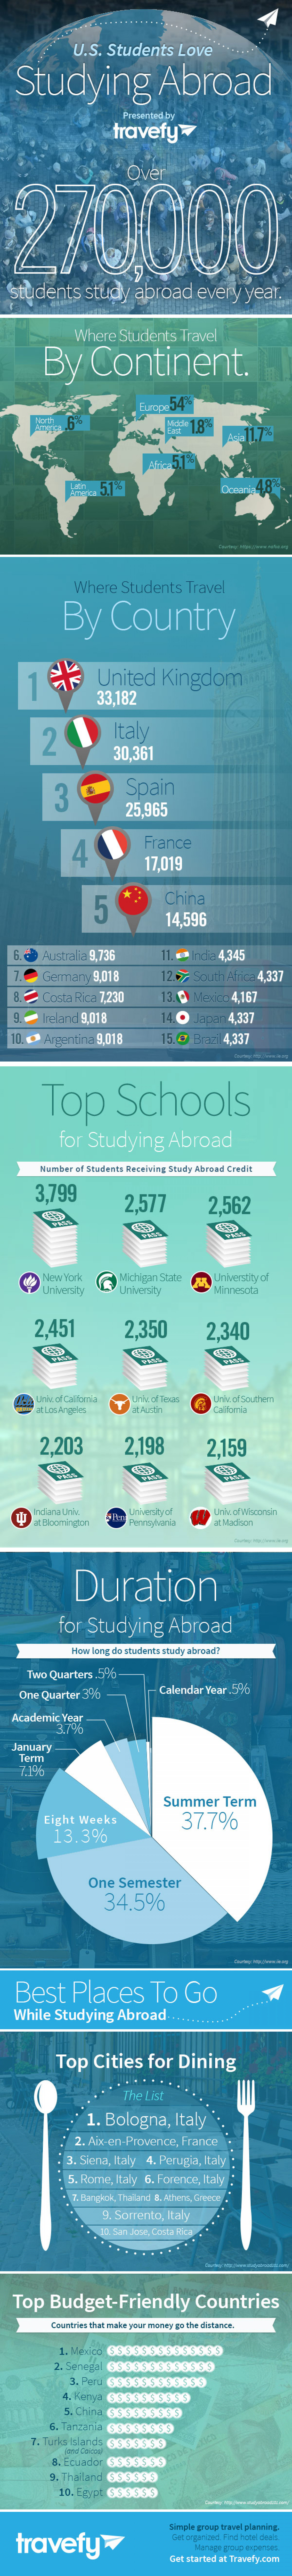 Fun Student Study Abroad Data Infographic